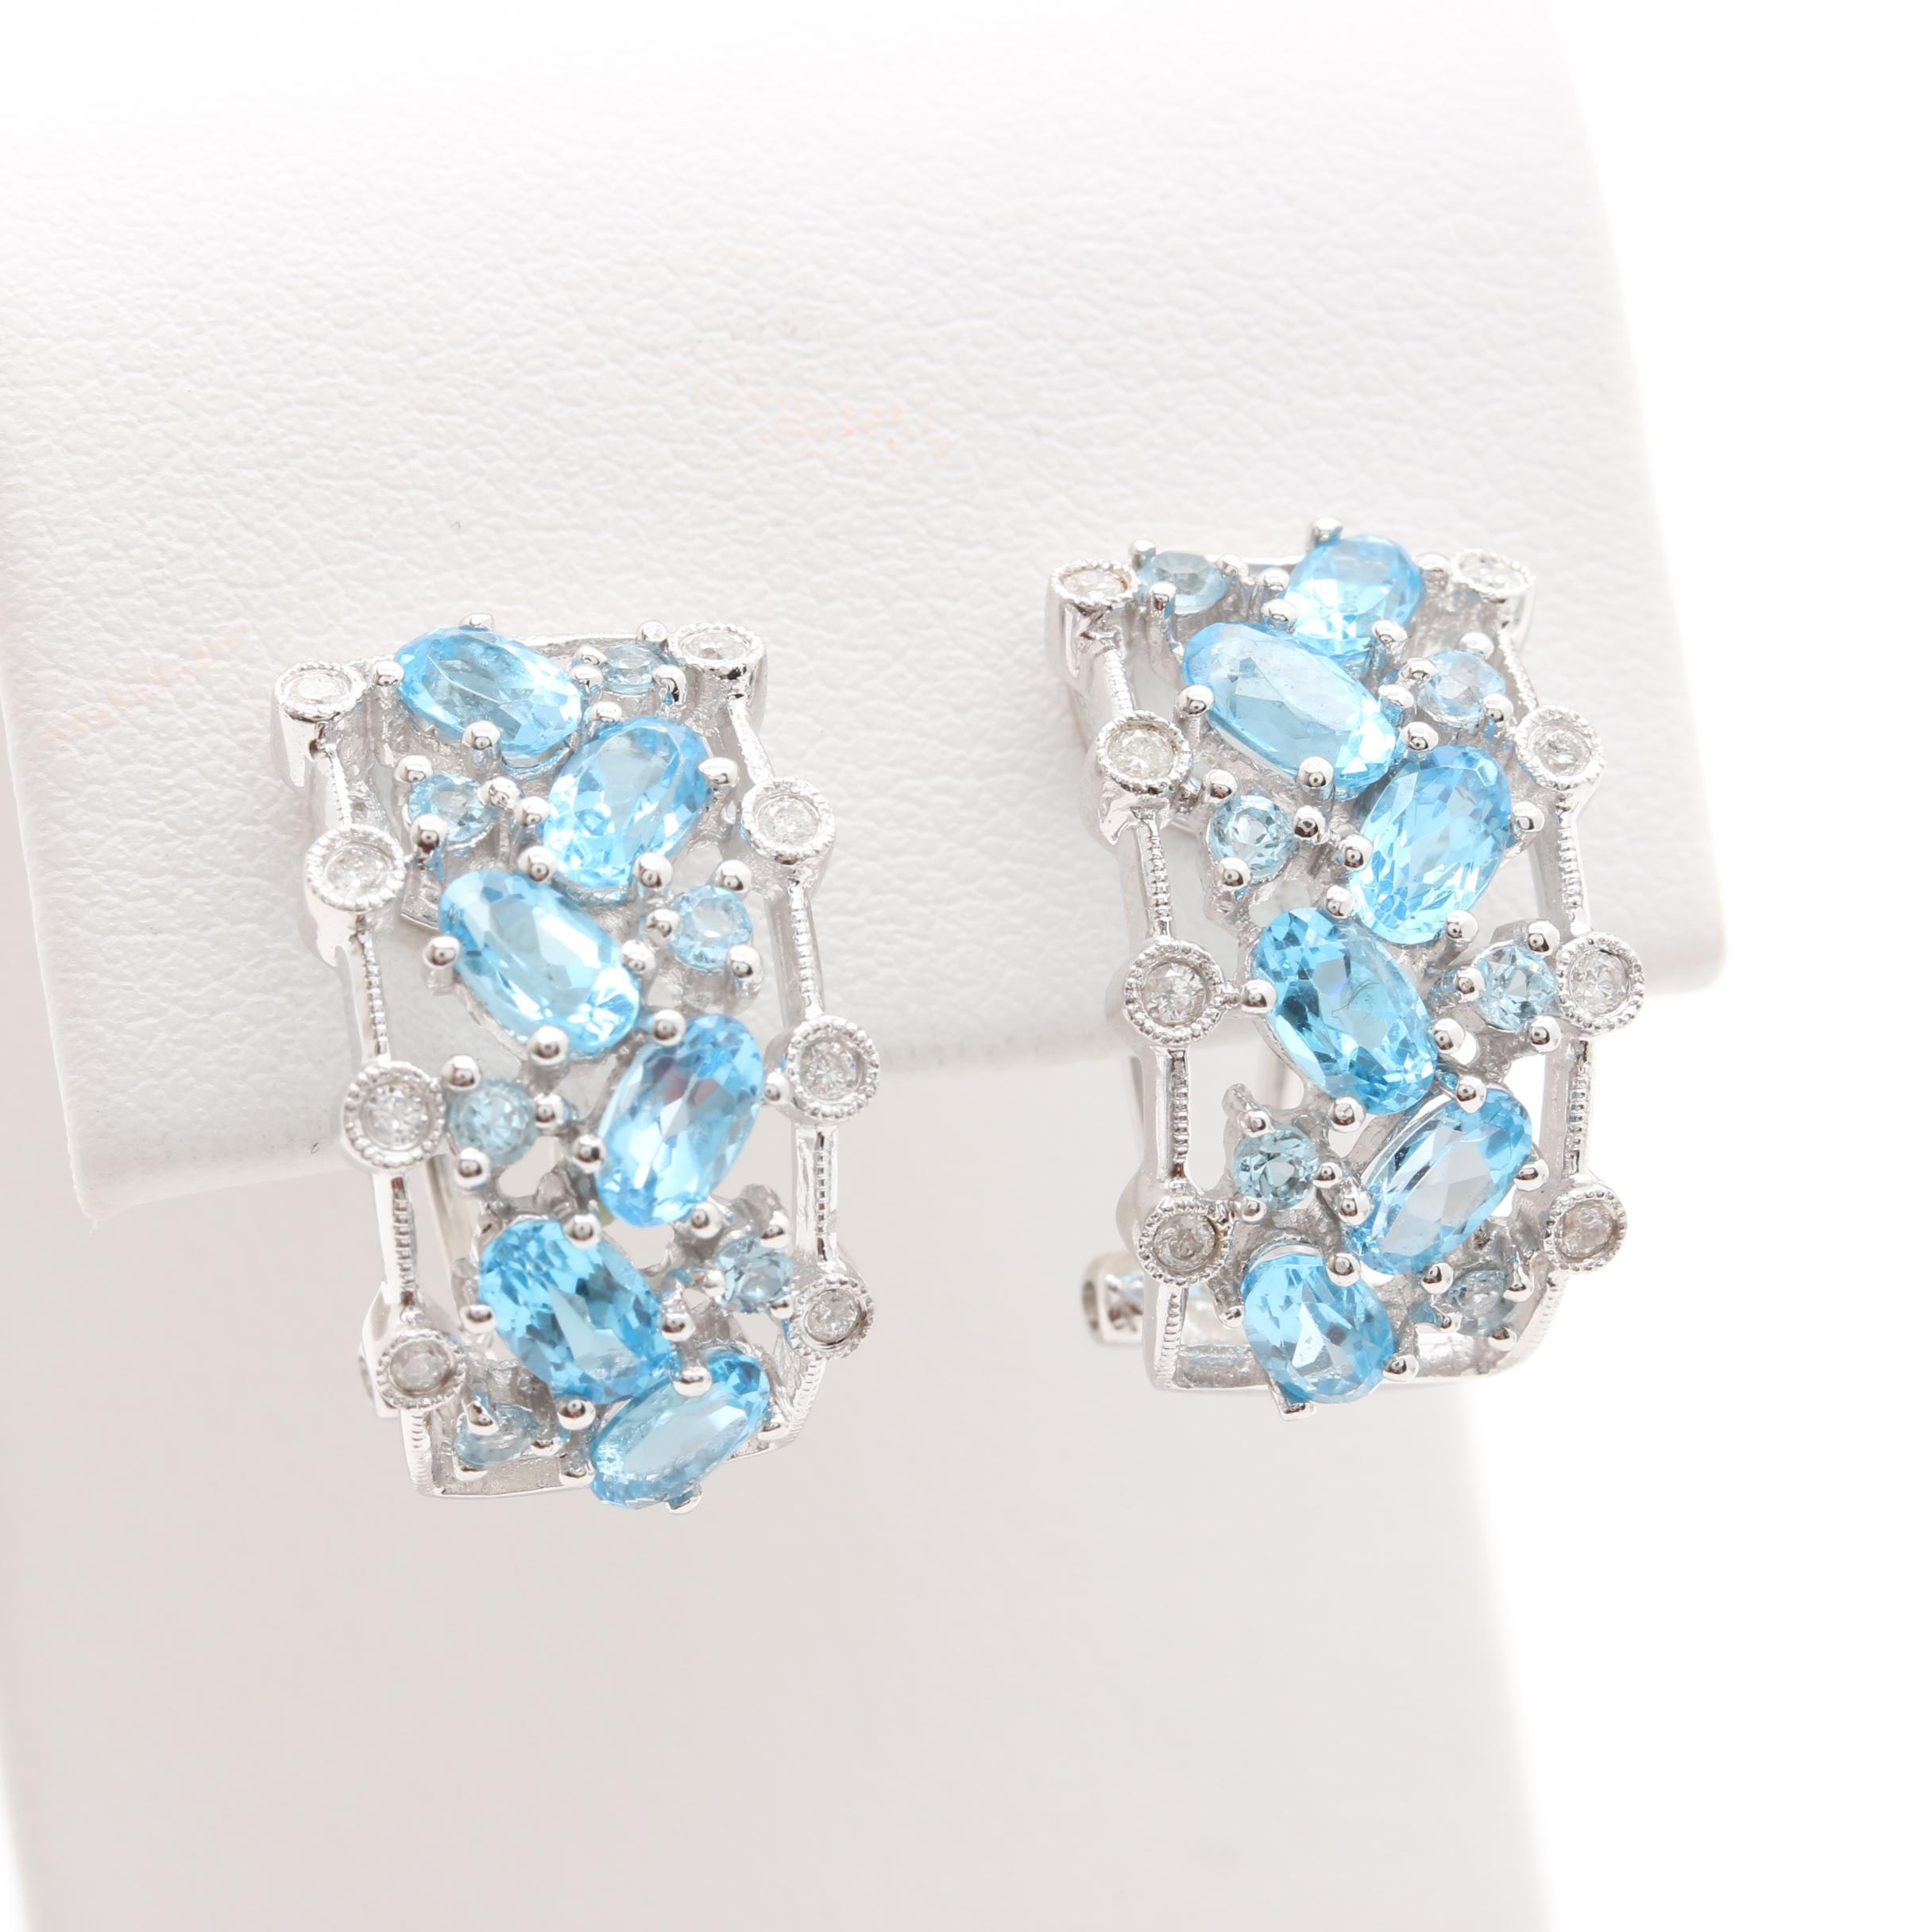 14K White Gold Diamond and Topaz Earrings